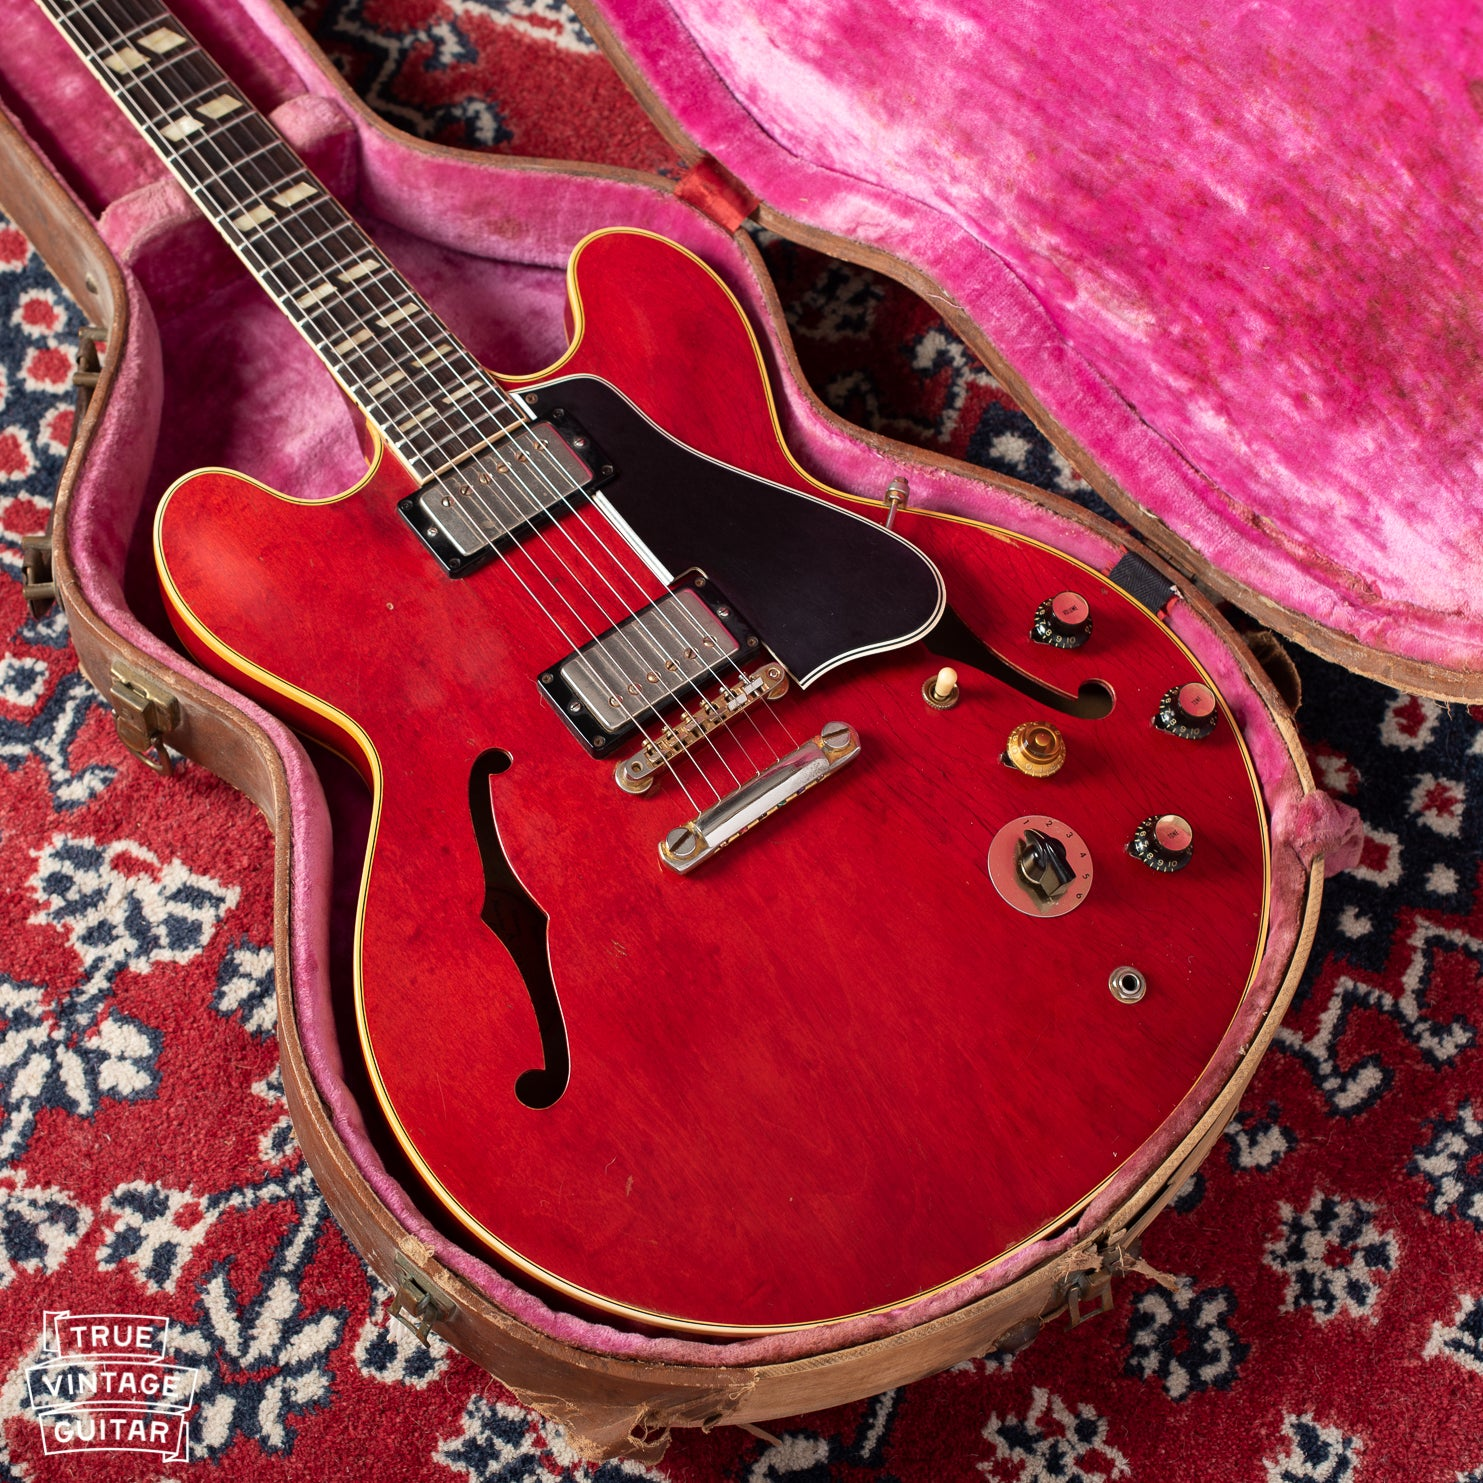 Gibson ES-345 guitar red with stop bar stop tail tailpiece and long pickguard. Pink interior case with brown exterior Lifton.